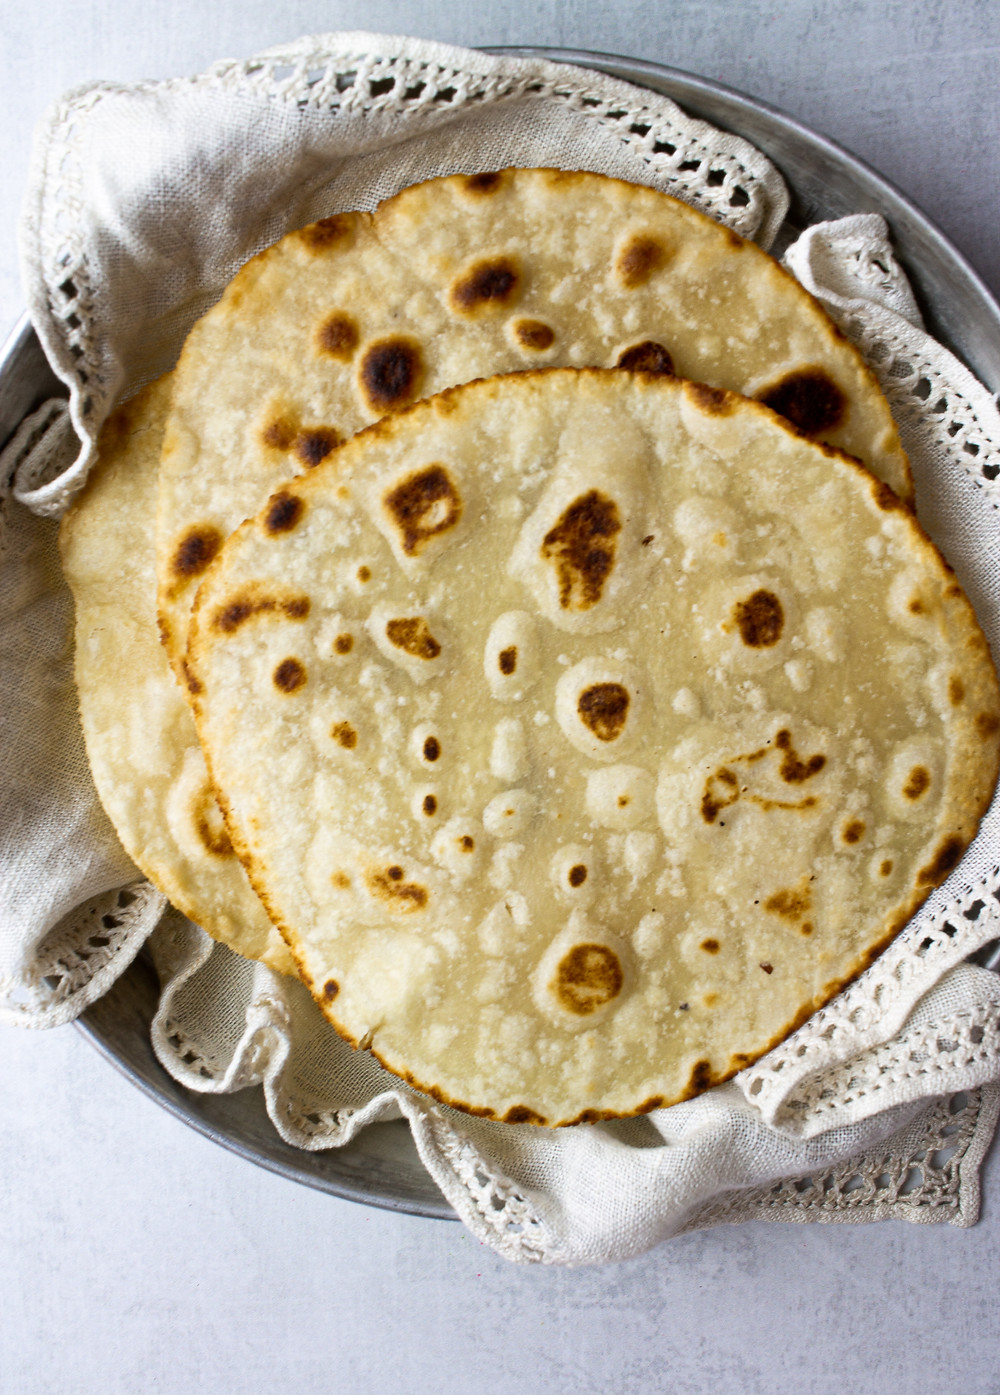 Grain Free Paleo Tortilla Recipe - Egg Free, Low Carb Tortillas | Pretty Delicious Life - Finding tortillas that are not just grain free, but also vegan and low carb tortillas is not an easy task but making paleo vegan tortillas at home is! This super simple tortilla recipe requires just 5 ingredients that you likely